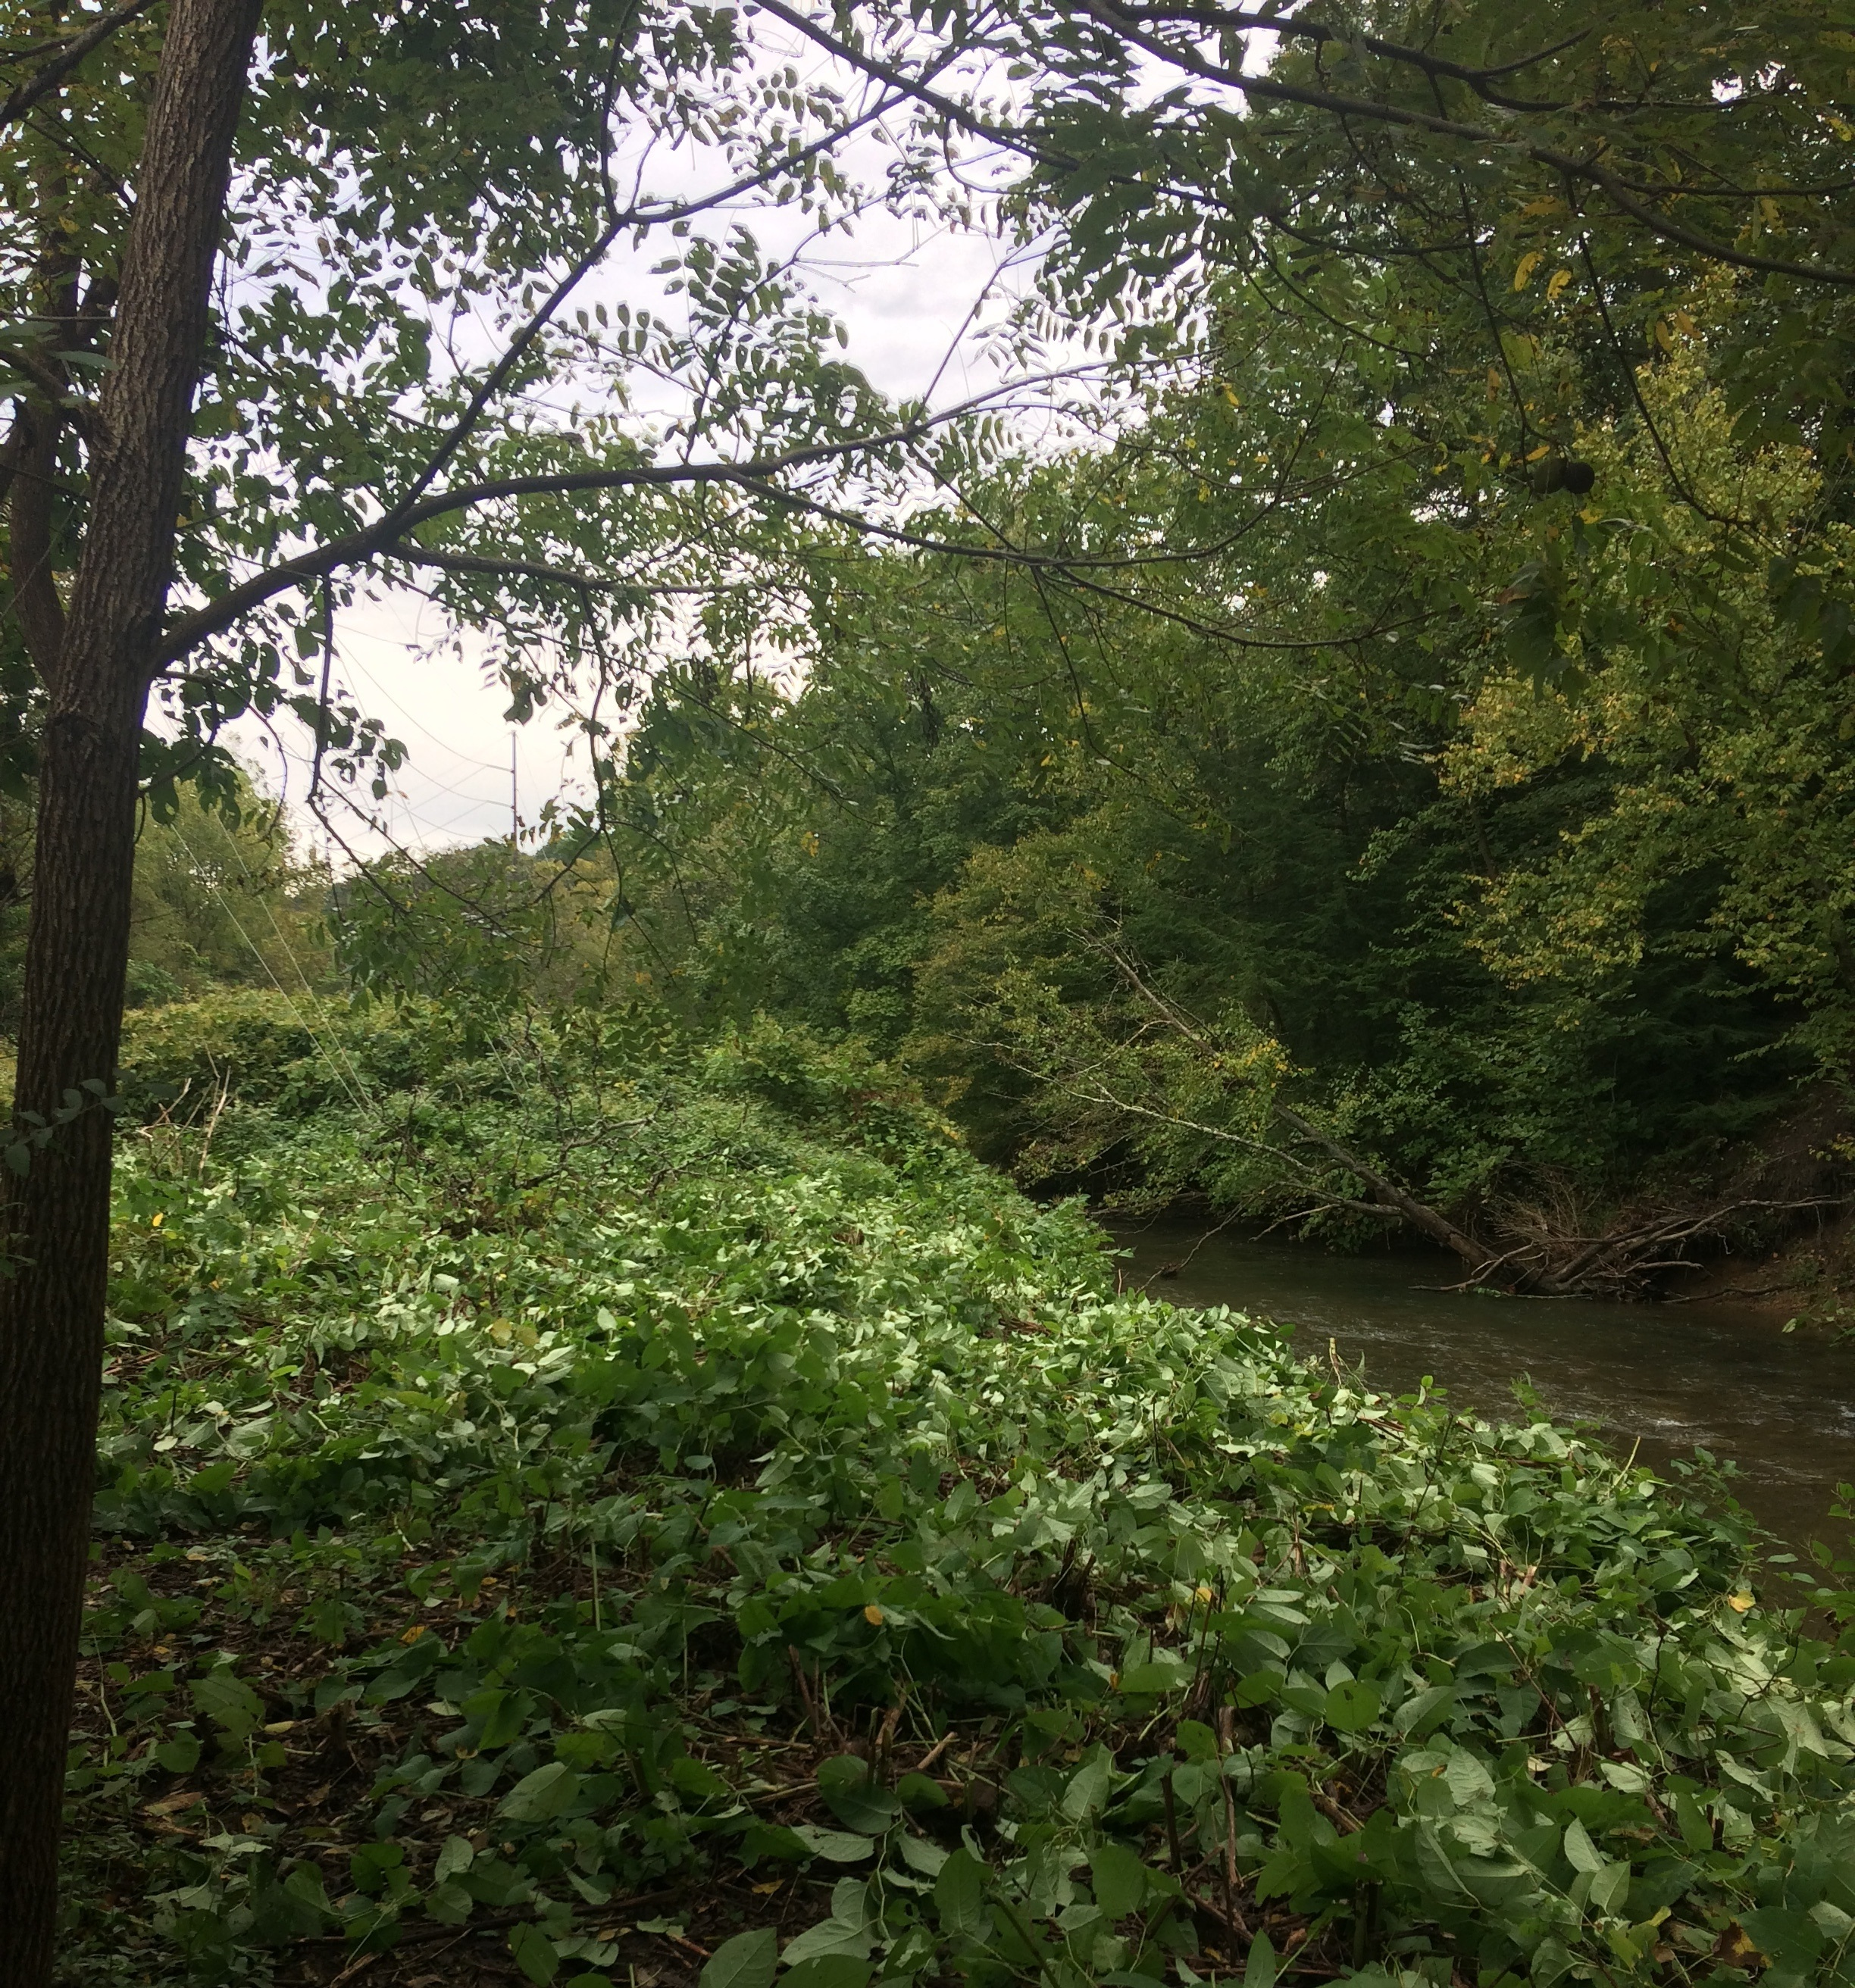 June 2018: Japanese Knotweed cut down in preparation for riparian buffer planting at the Forestbrooke Conservation Area.